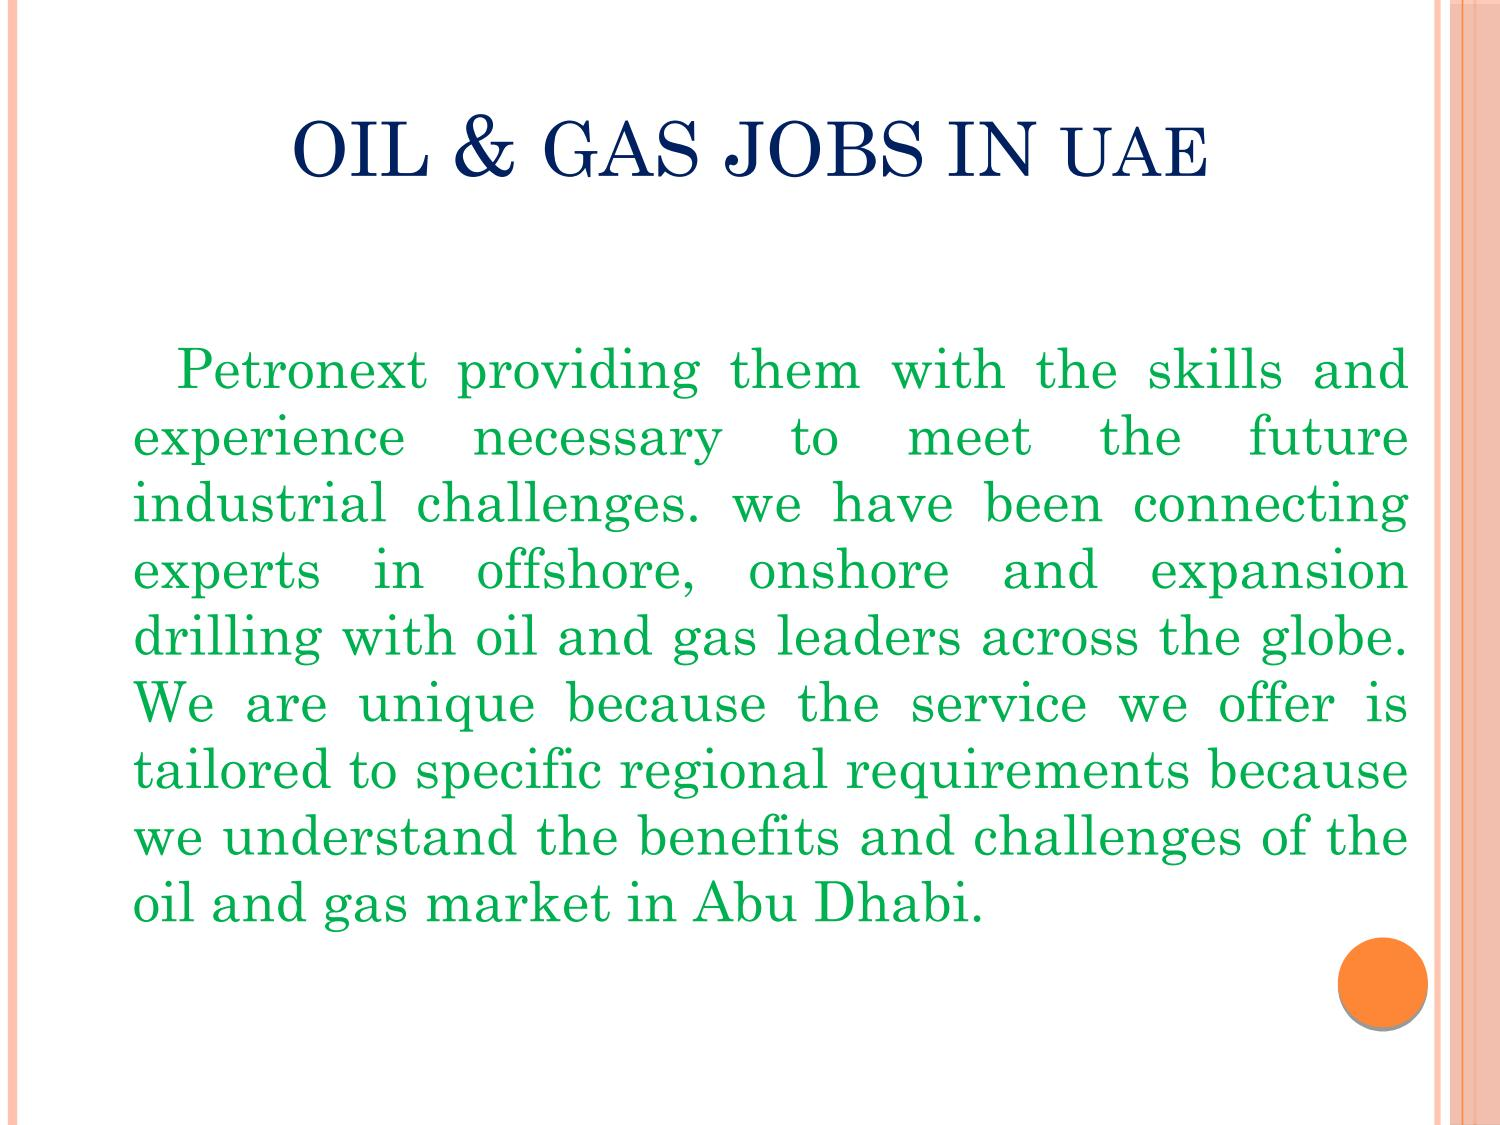 Oil & Gas jobs in UAE by petronextinternational - issuu